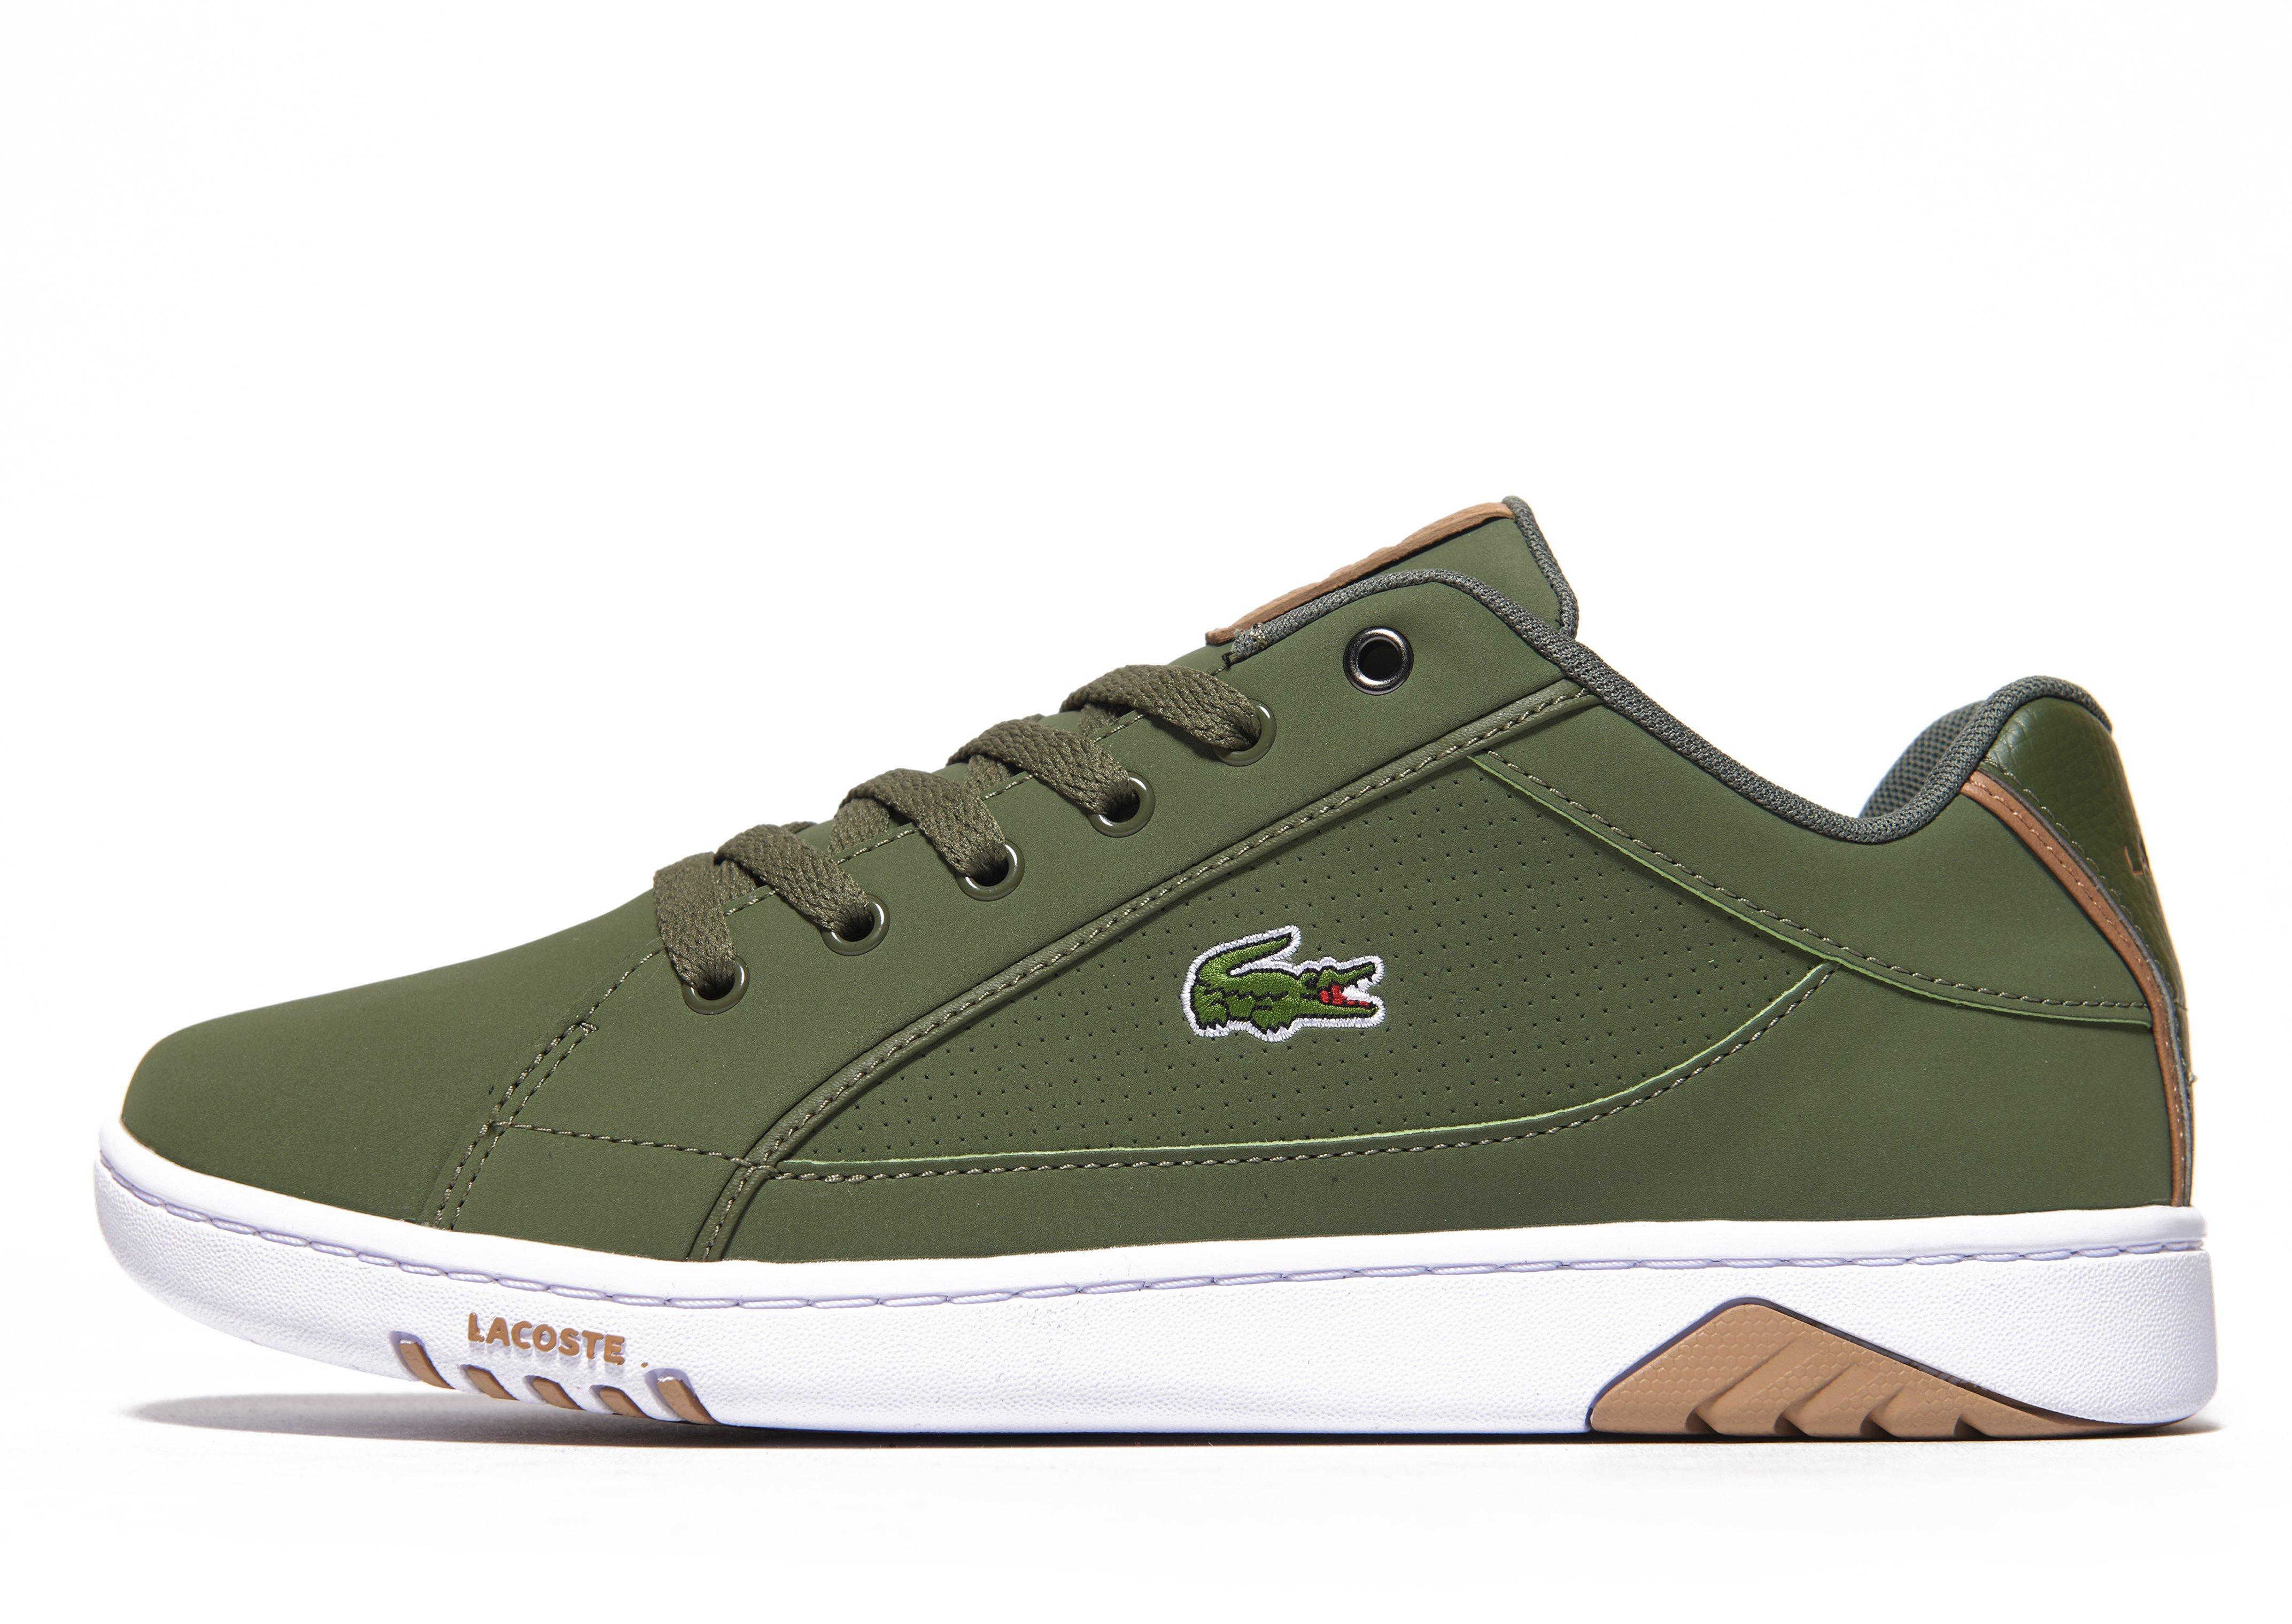 Lyst - Lacoste Deviation 217 in Green for Men